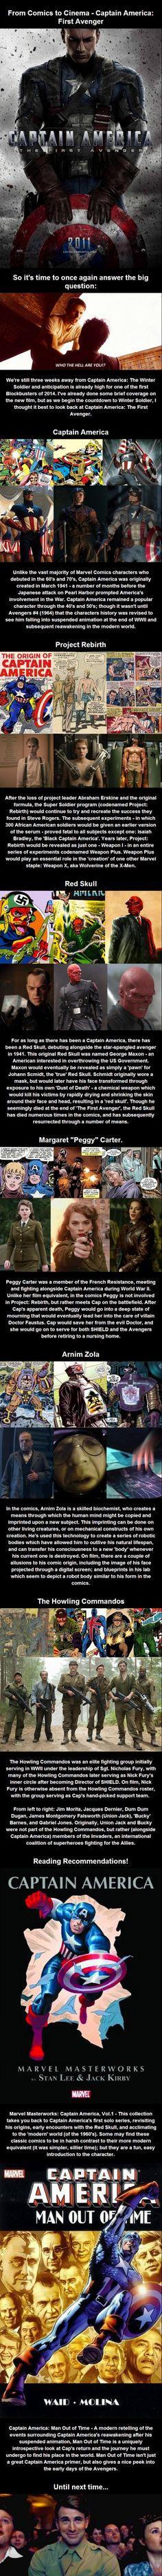 From Comics to Cinema - Captain America: First Avenger #captainamerica #ohcaptainmycaptian